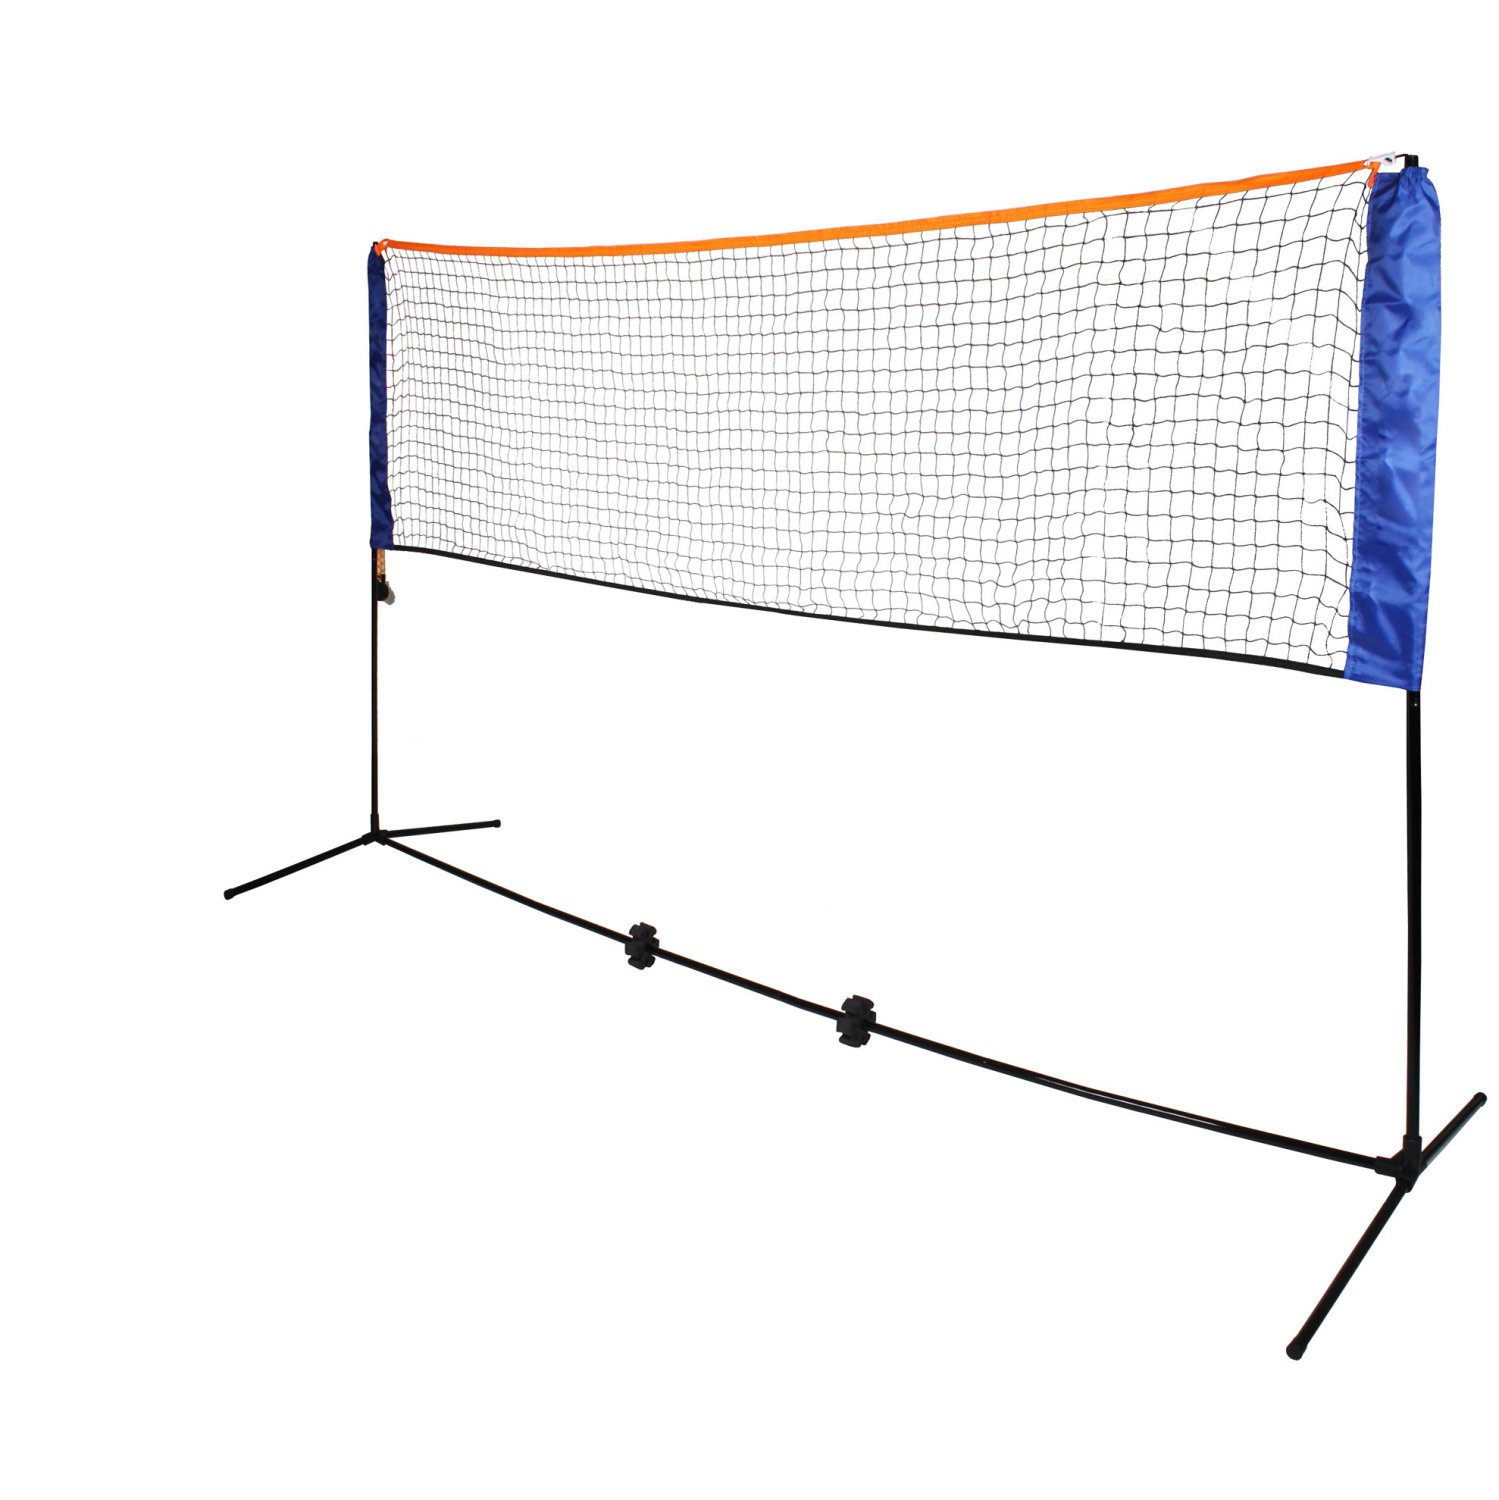 Small 3m Adjustable Foldable Badminton Tennis Volleyball Net